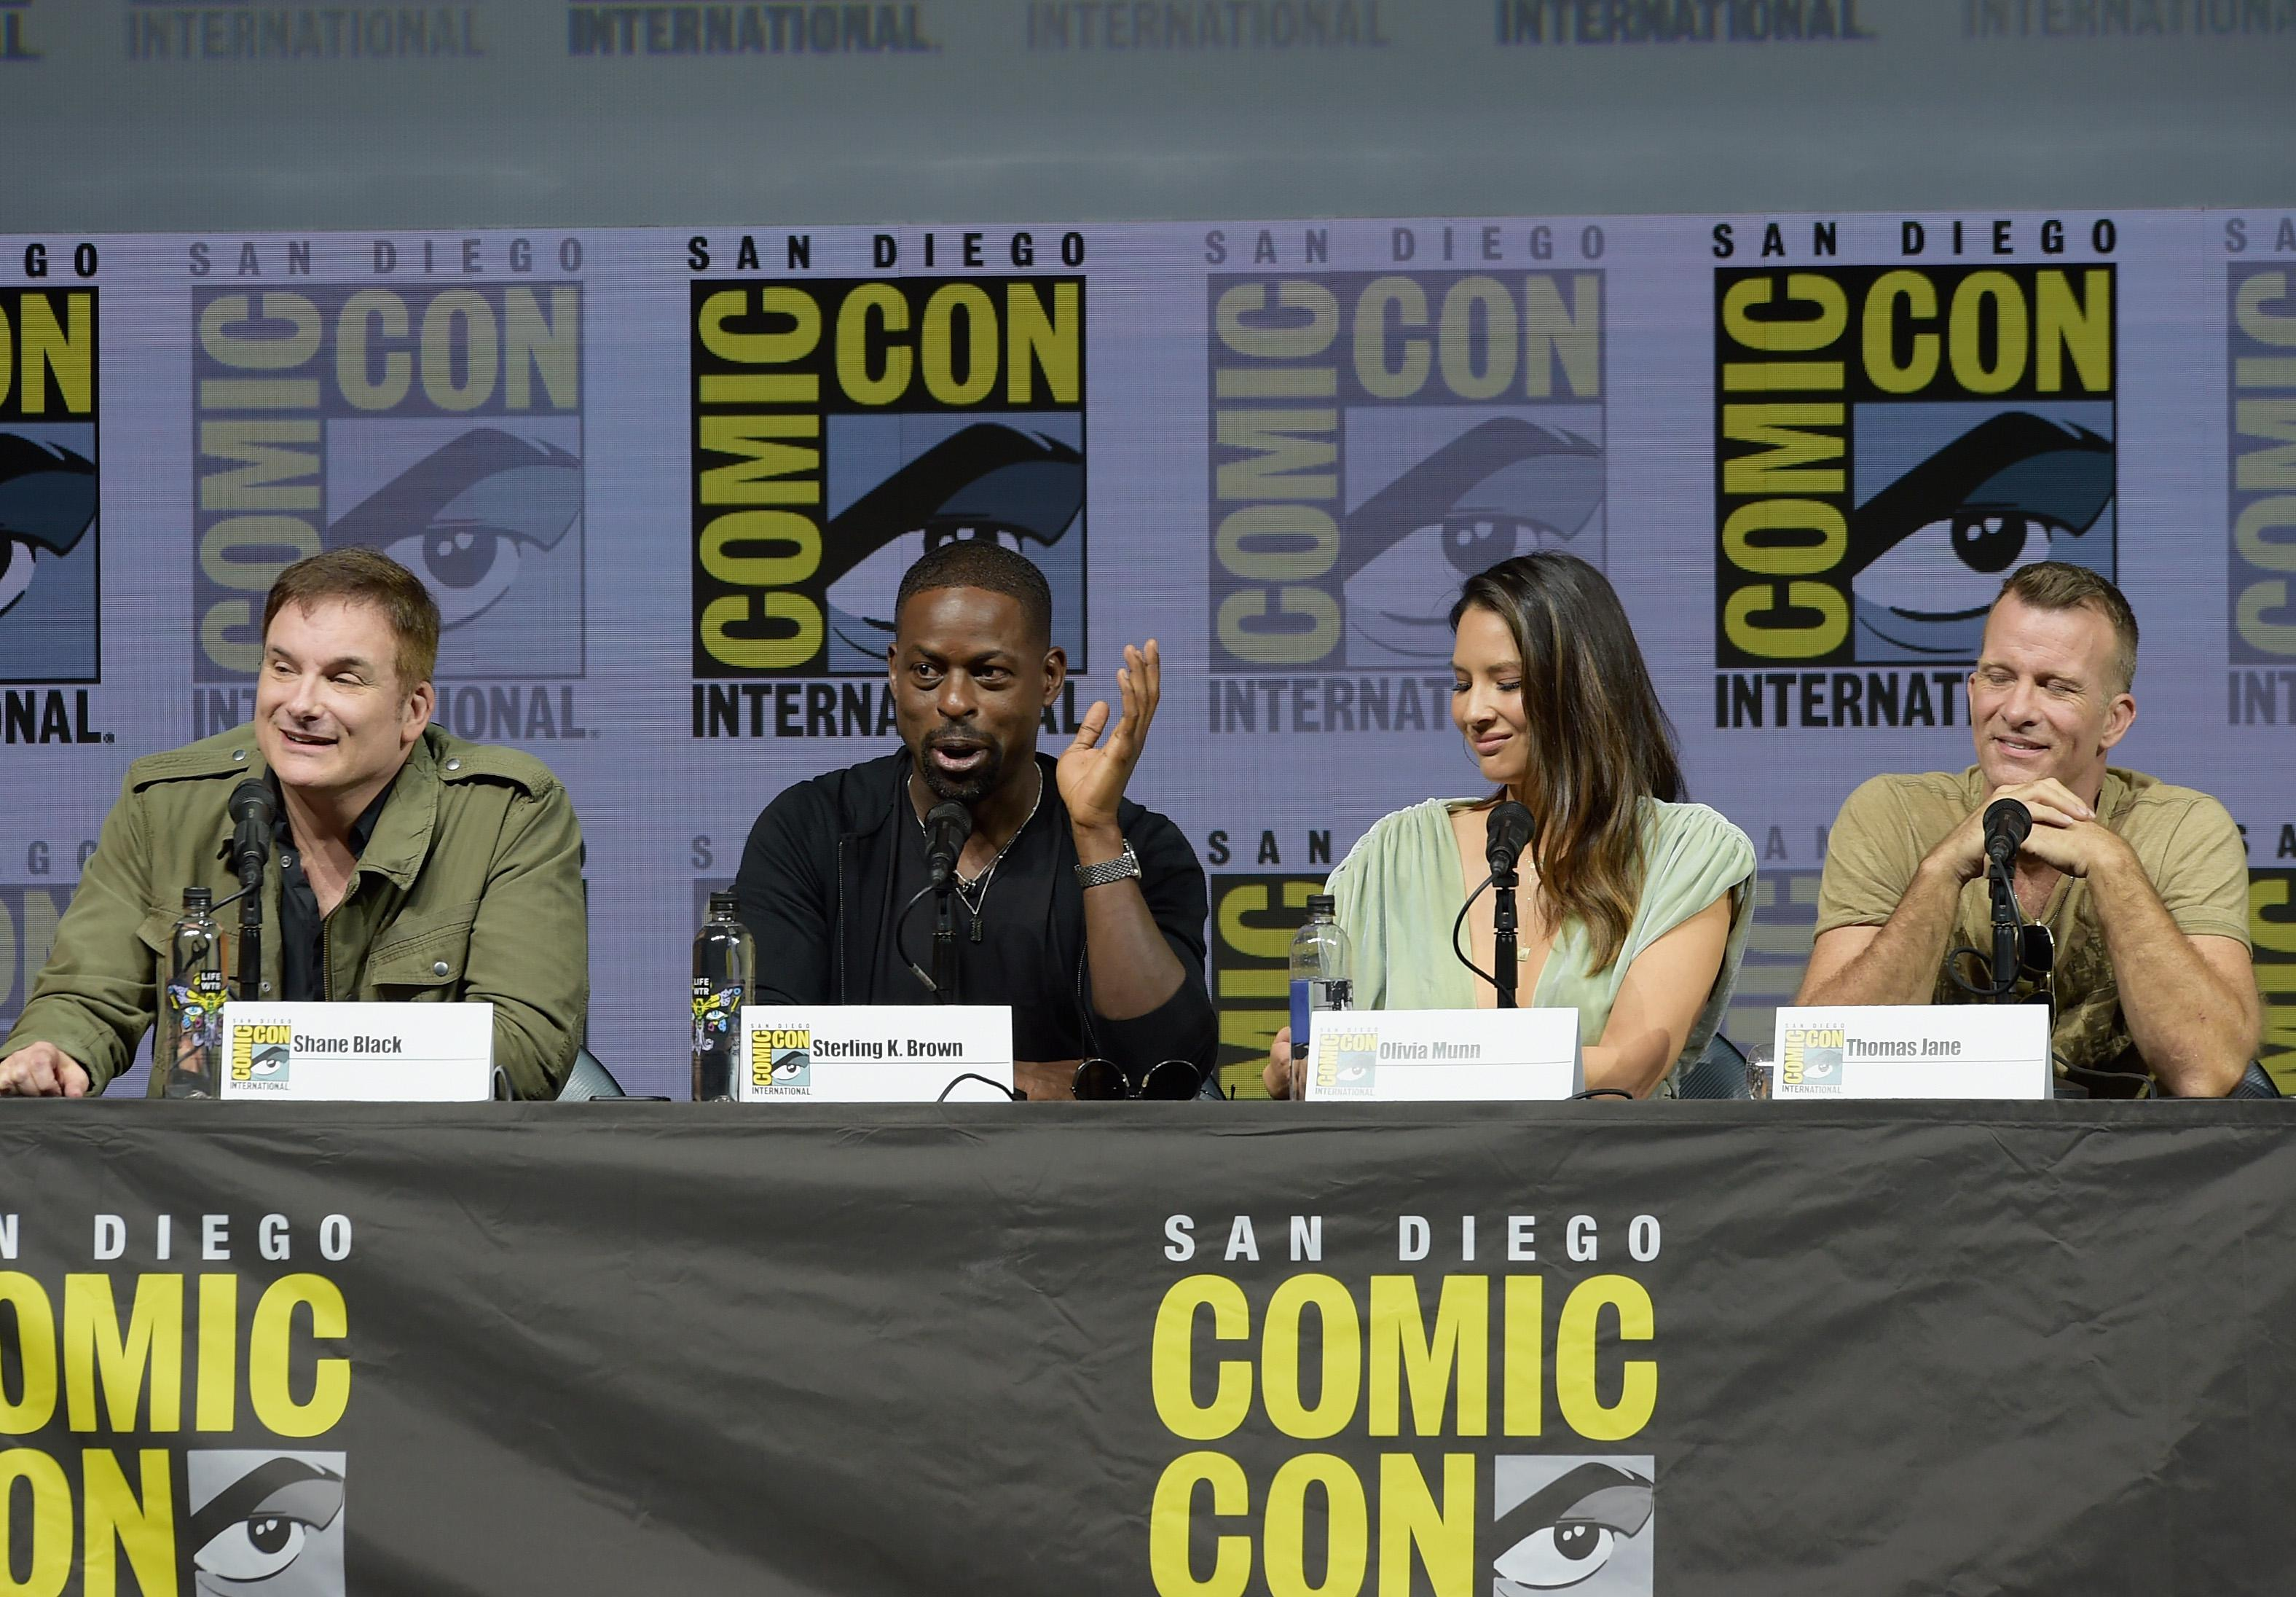 Shane Black, Sterling K. Brown, Olivia Munn, and Thomas Jane at 20th Century Fox's The Predator Comic-Con panel.